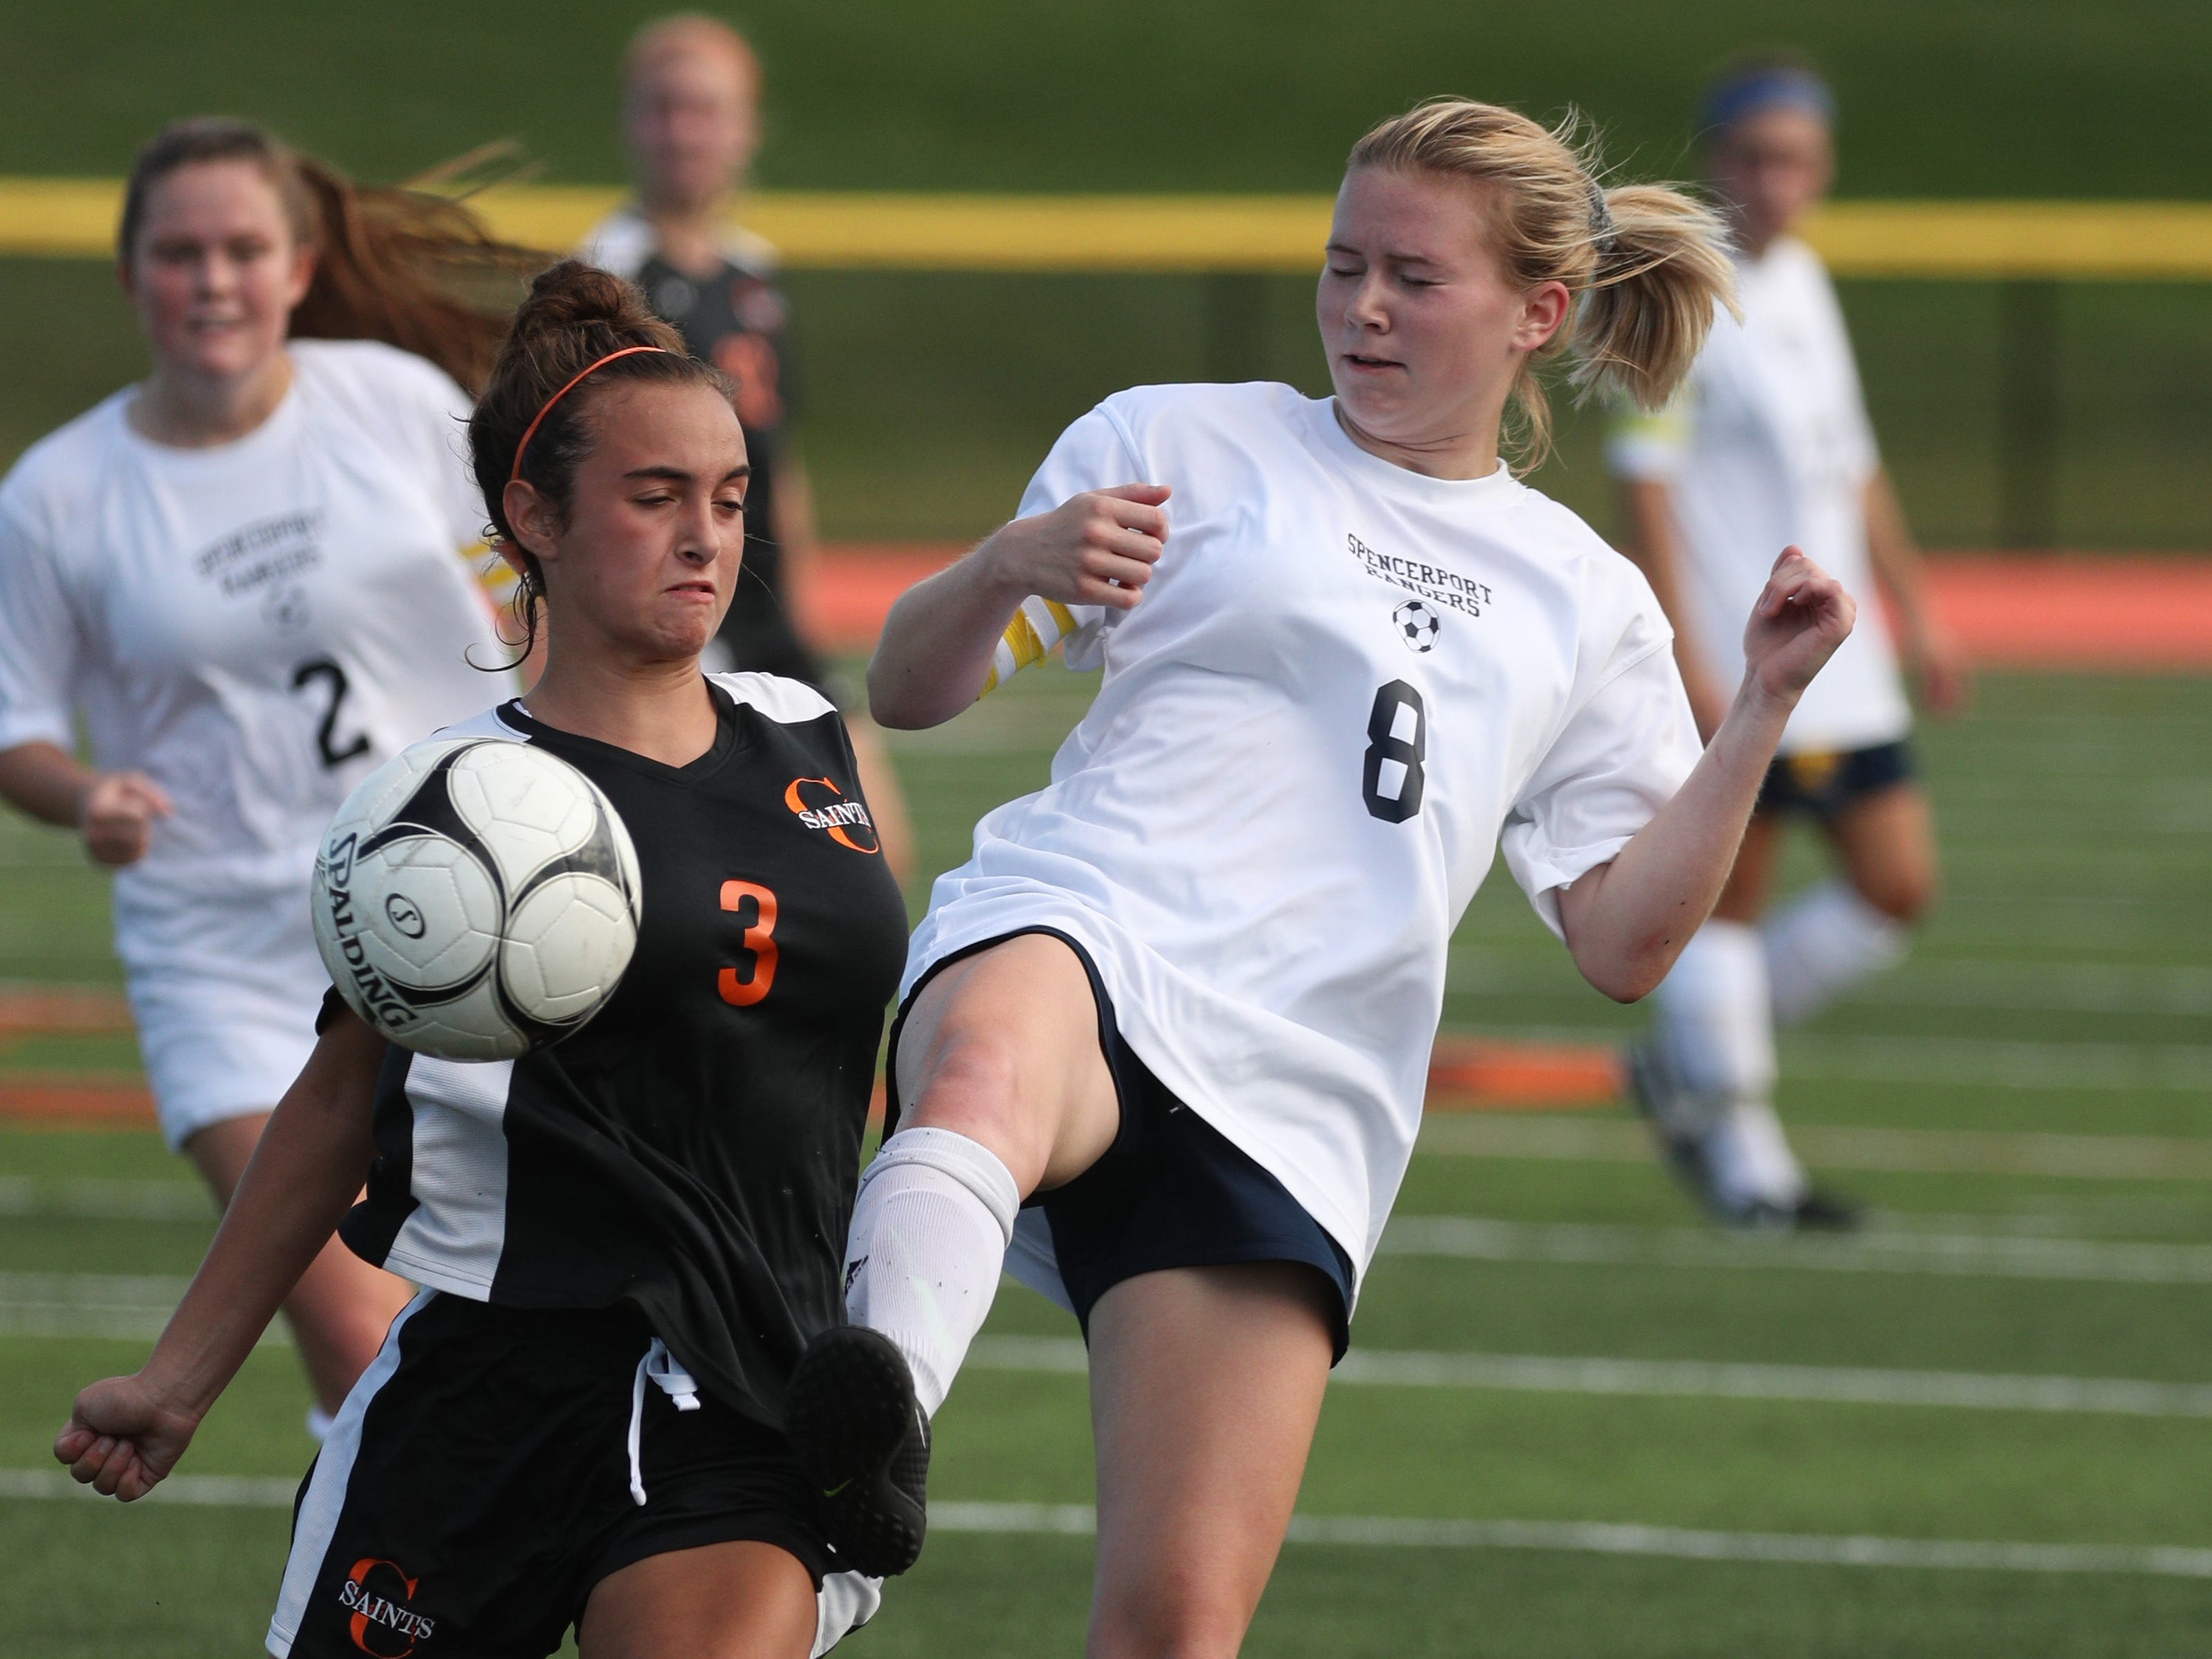 Churchville-Chili's Angelica Reina and Spencerport's Leah Wengender (8) try to control the ball.